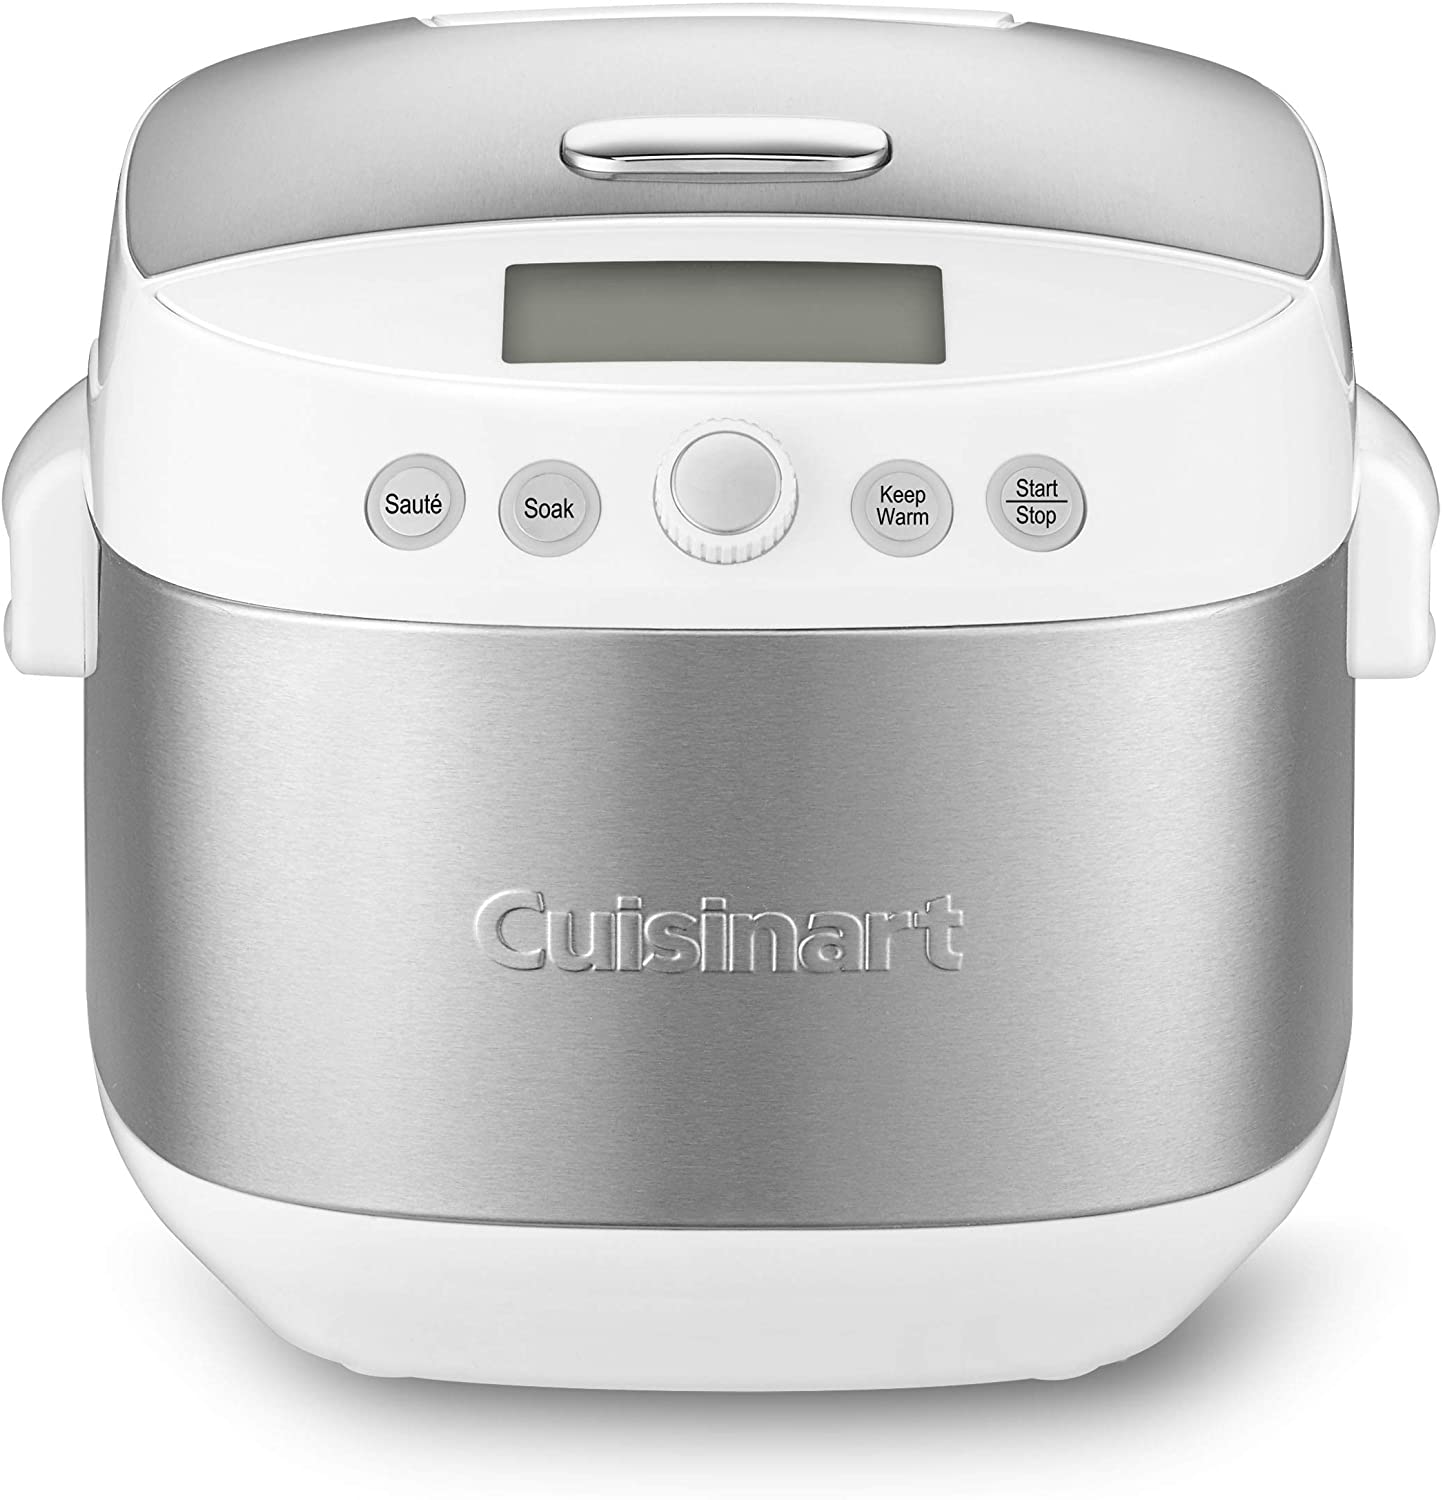 Cuisinart FRC-1000 Multicooker 10 Cup Capacity Grain and Rice Cooker With LCD screen